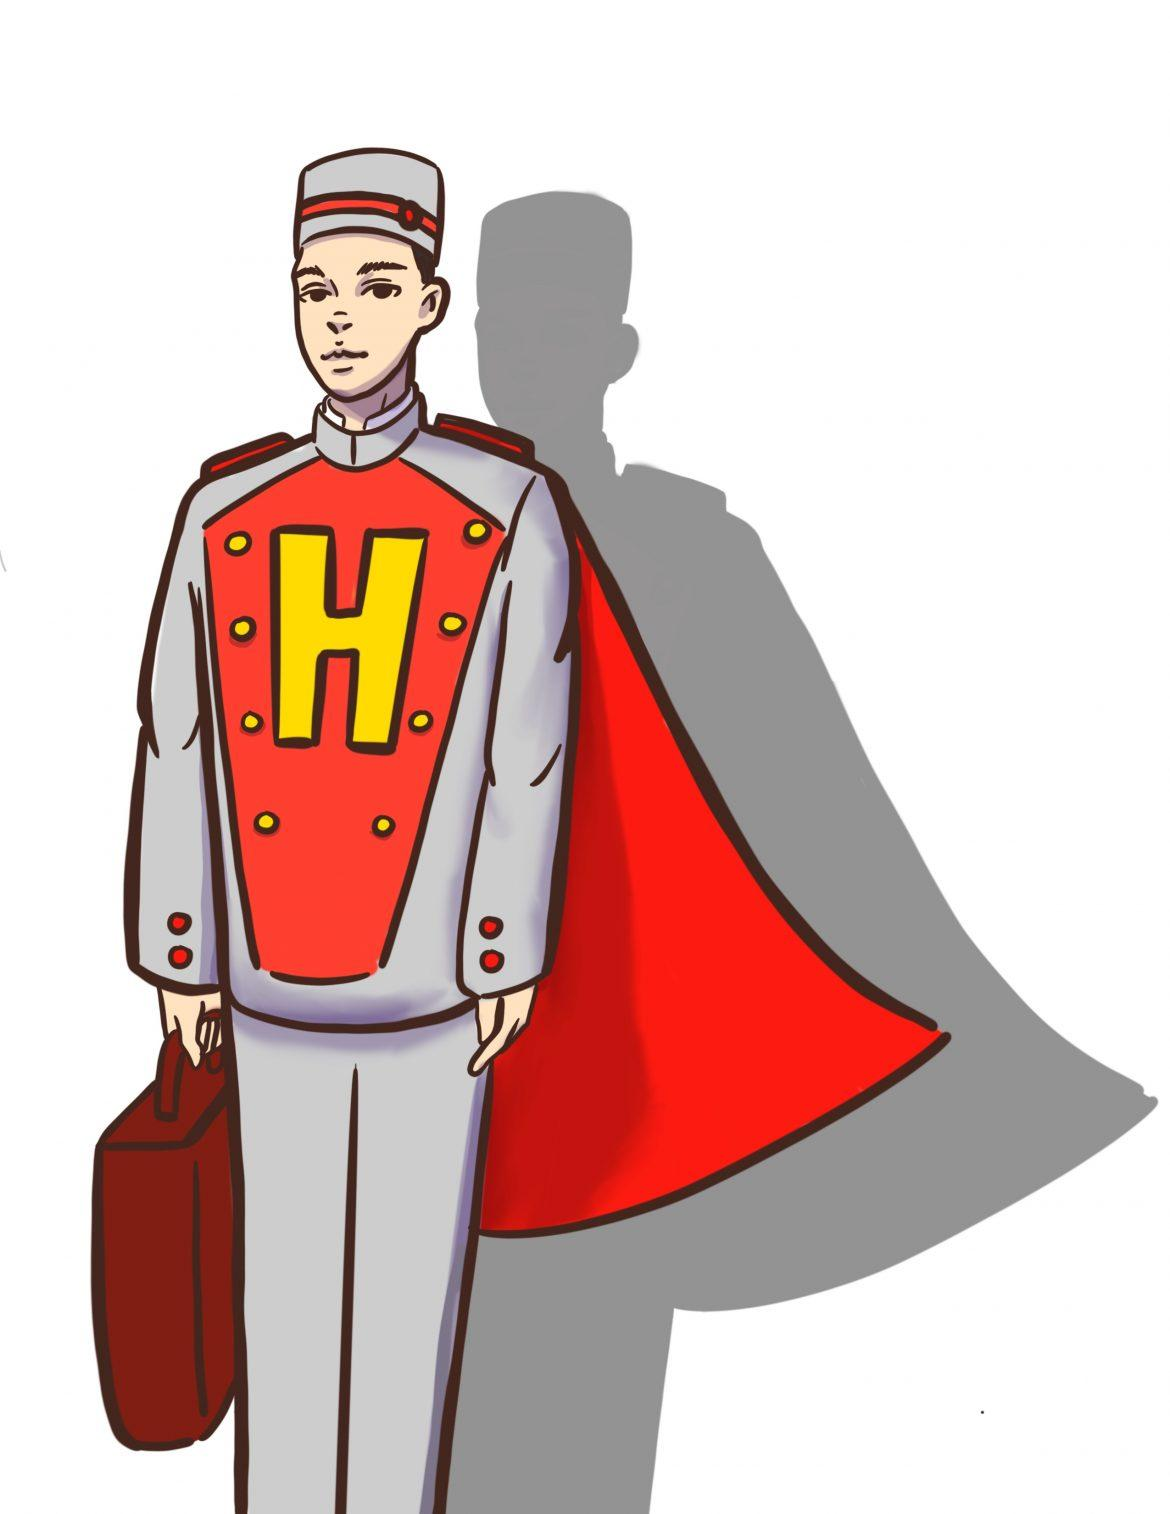 drawing+of+bellhop+with+yellow+H+on+his+uniform